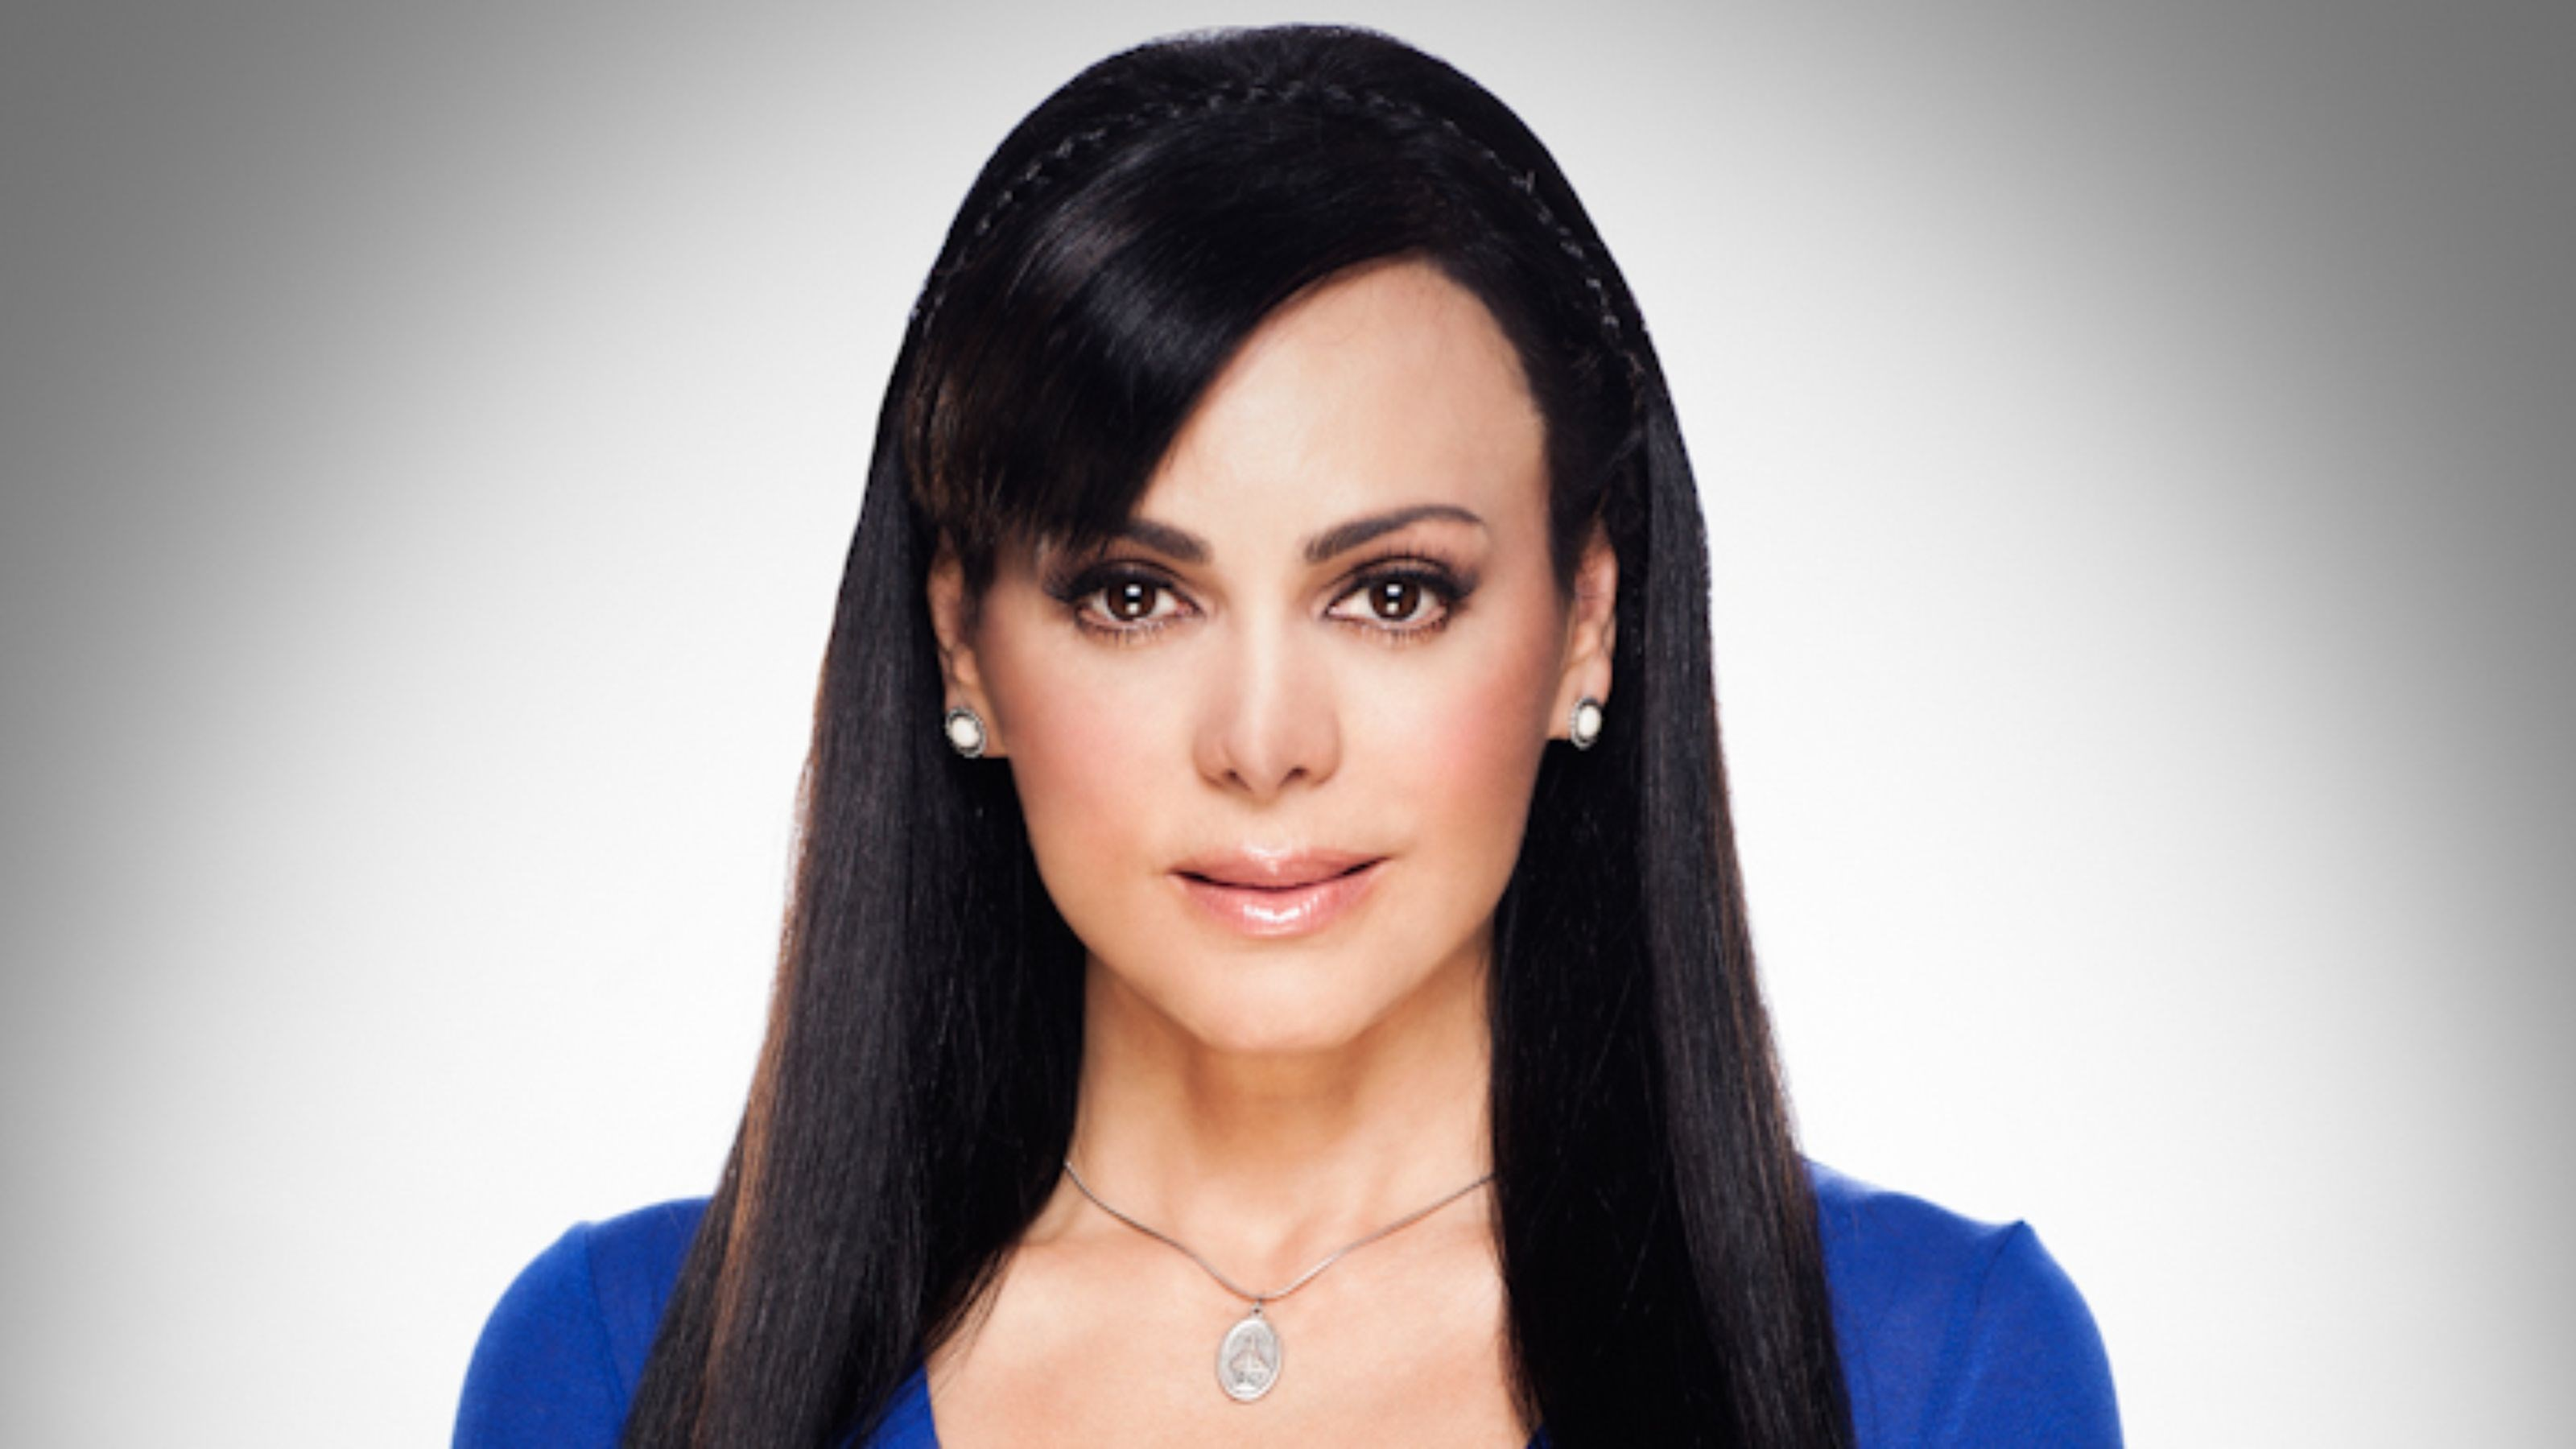 Maribel Guardia | Known people - famous people news and